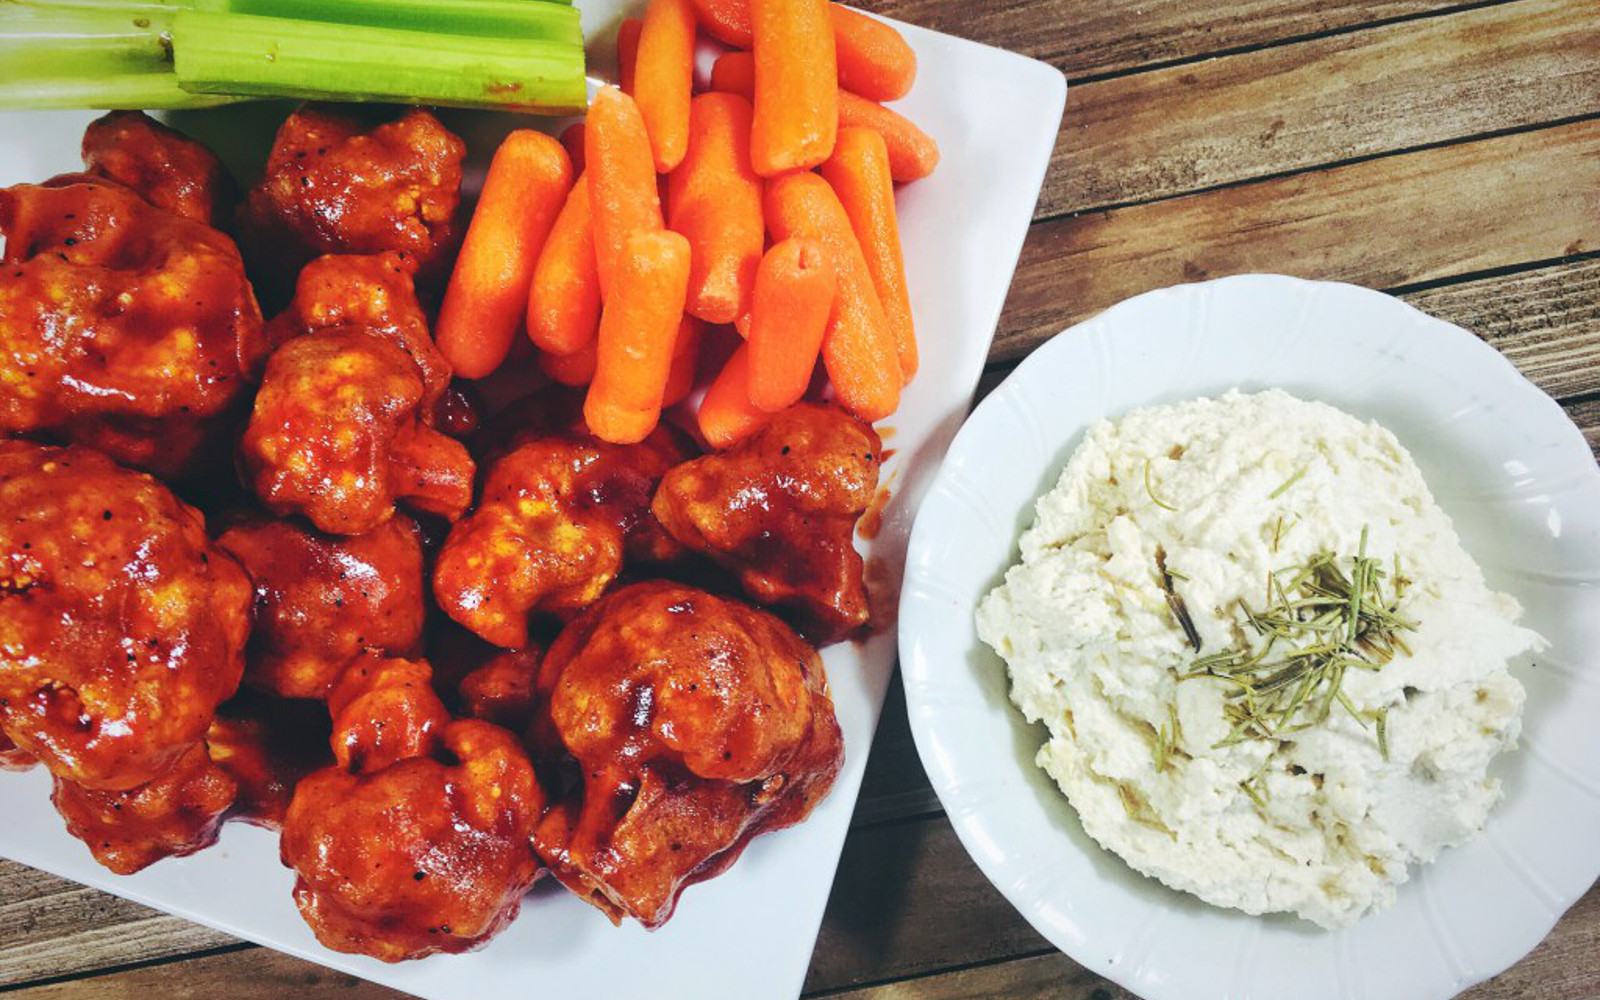 Spicy BBQ Cauliflower Wings With a Cashew Dipping Sauce